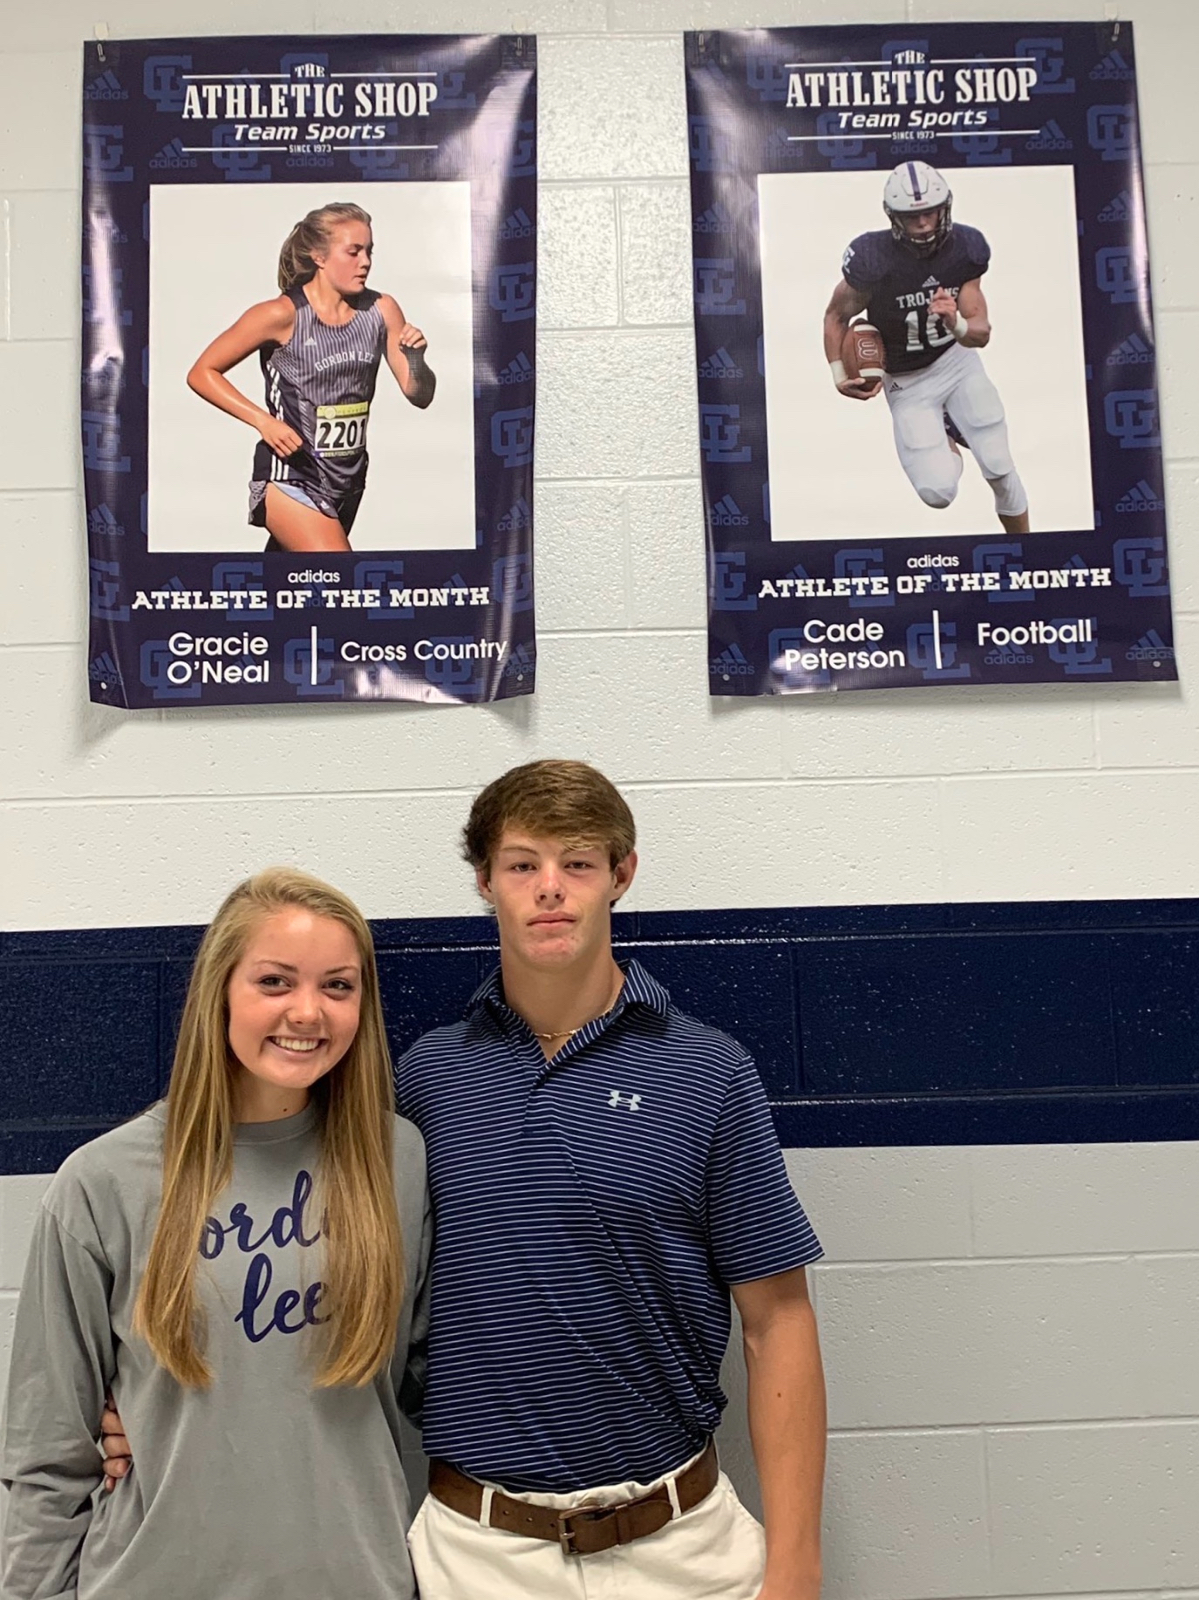 ATHLETES OF THE MONTH: Gracie O'Neal and Cade Peterson